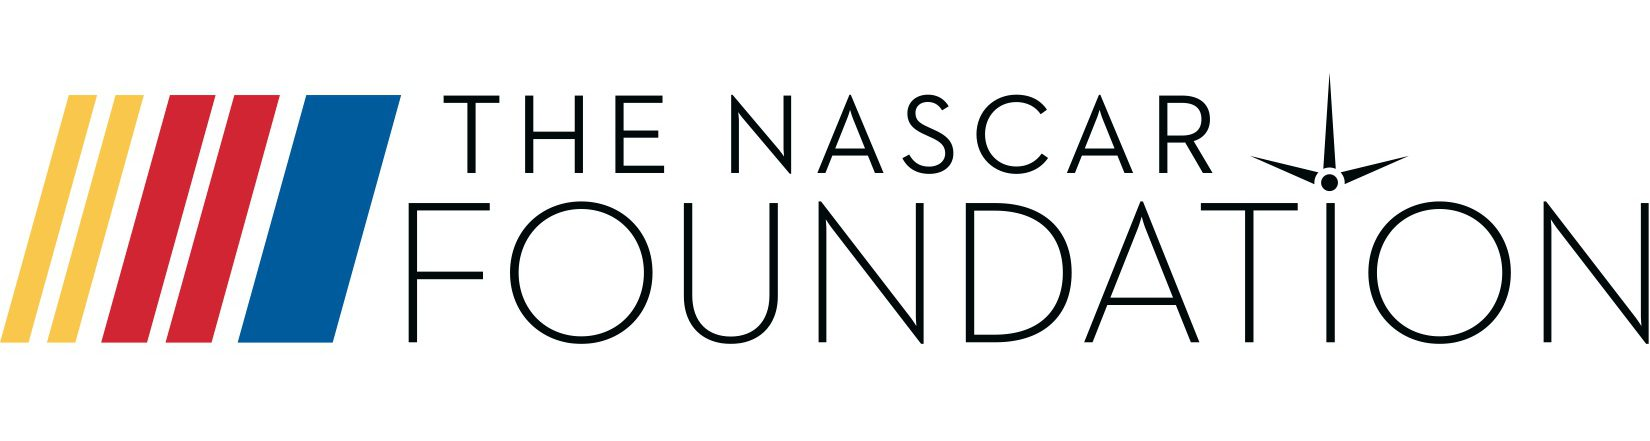 Nascar Foundation